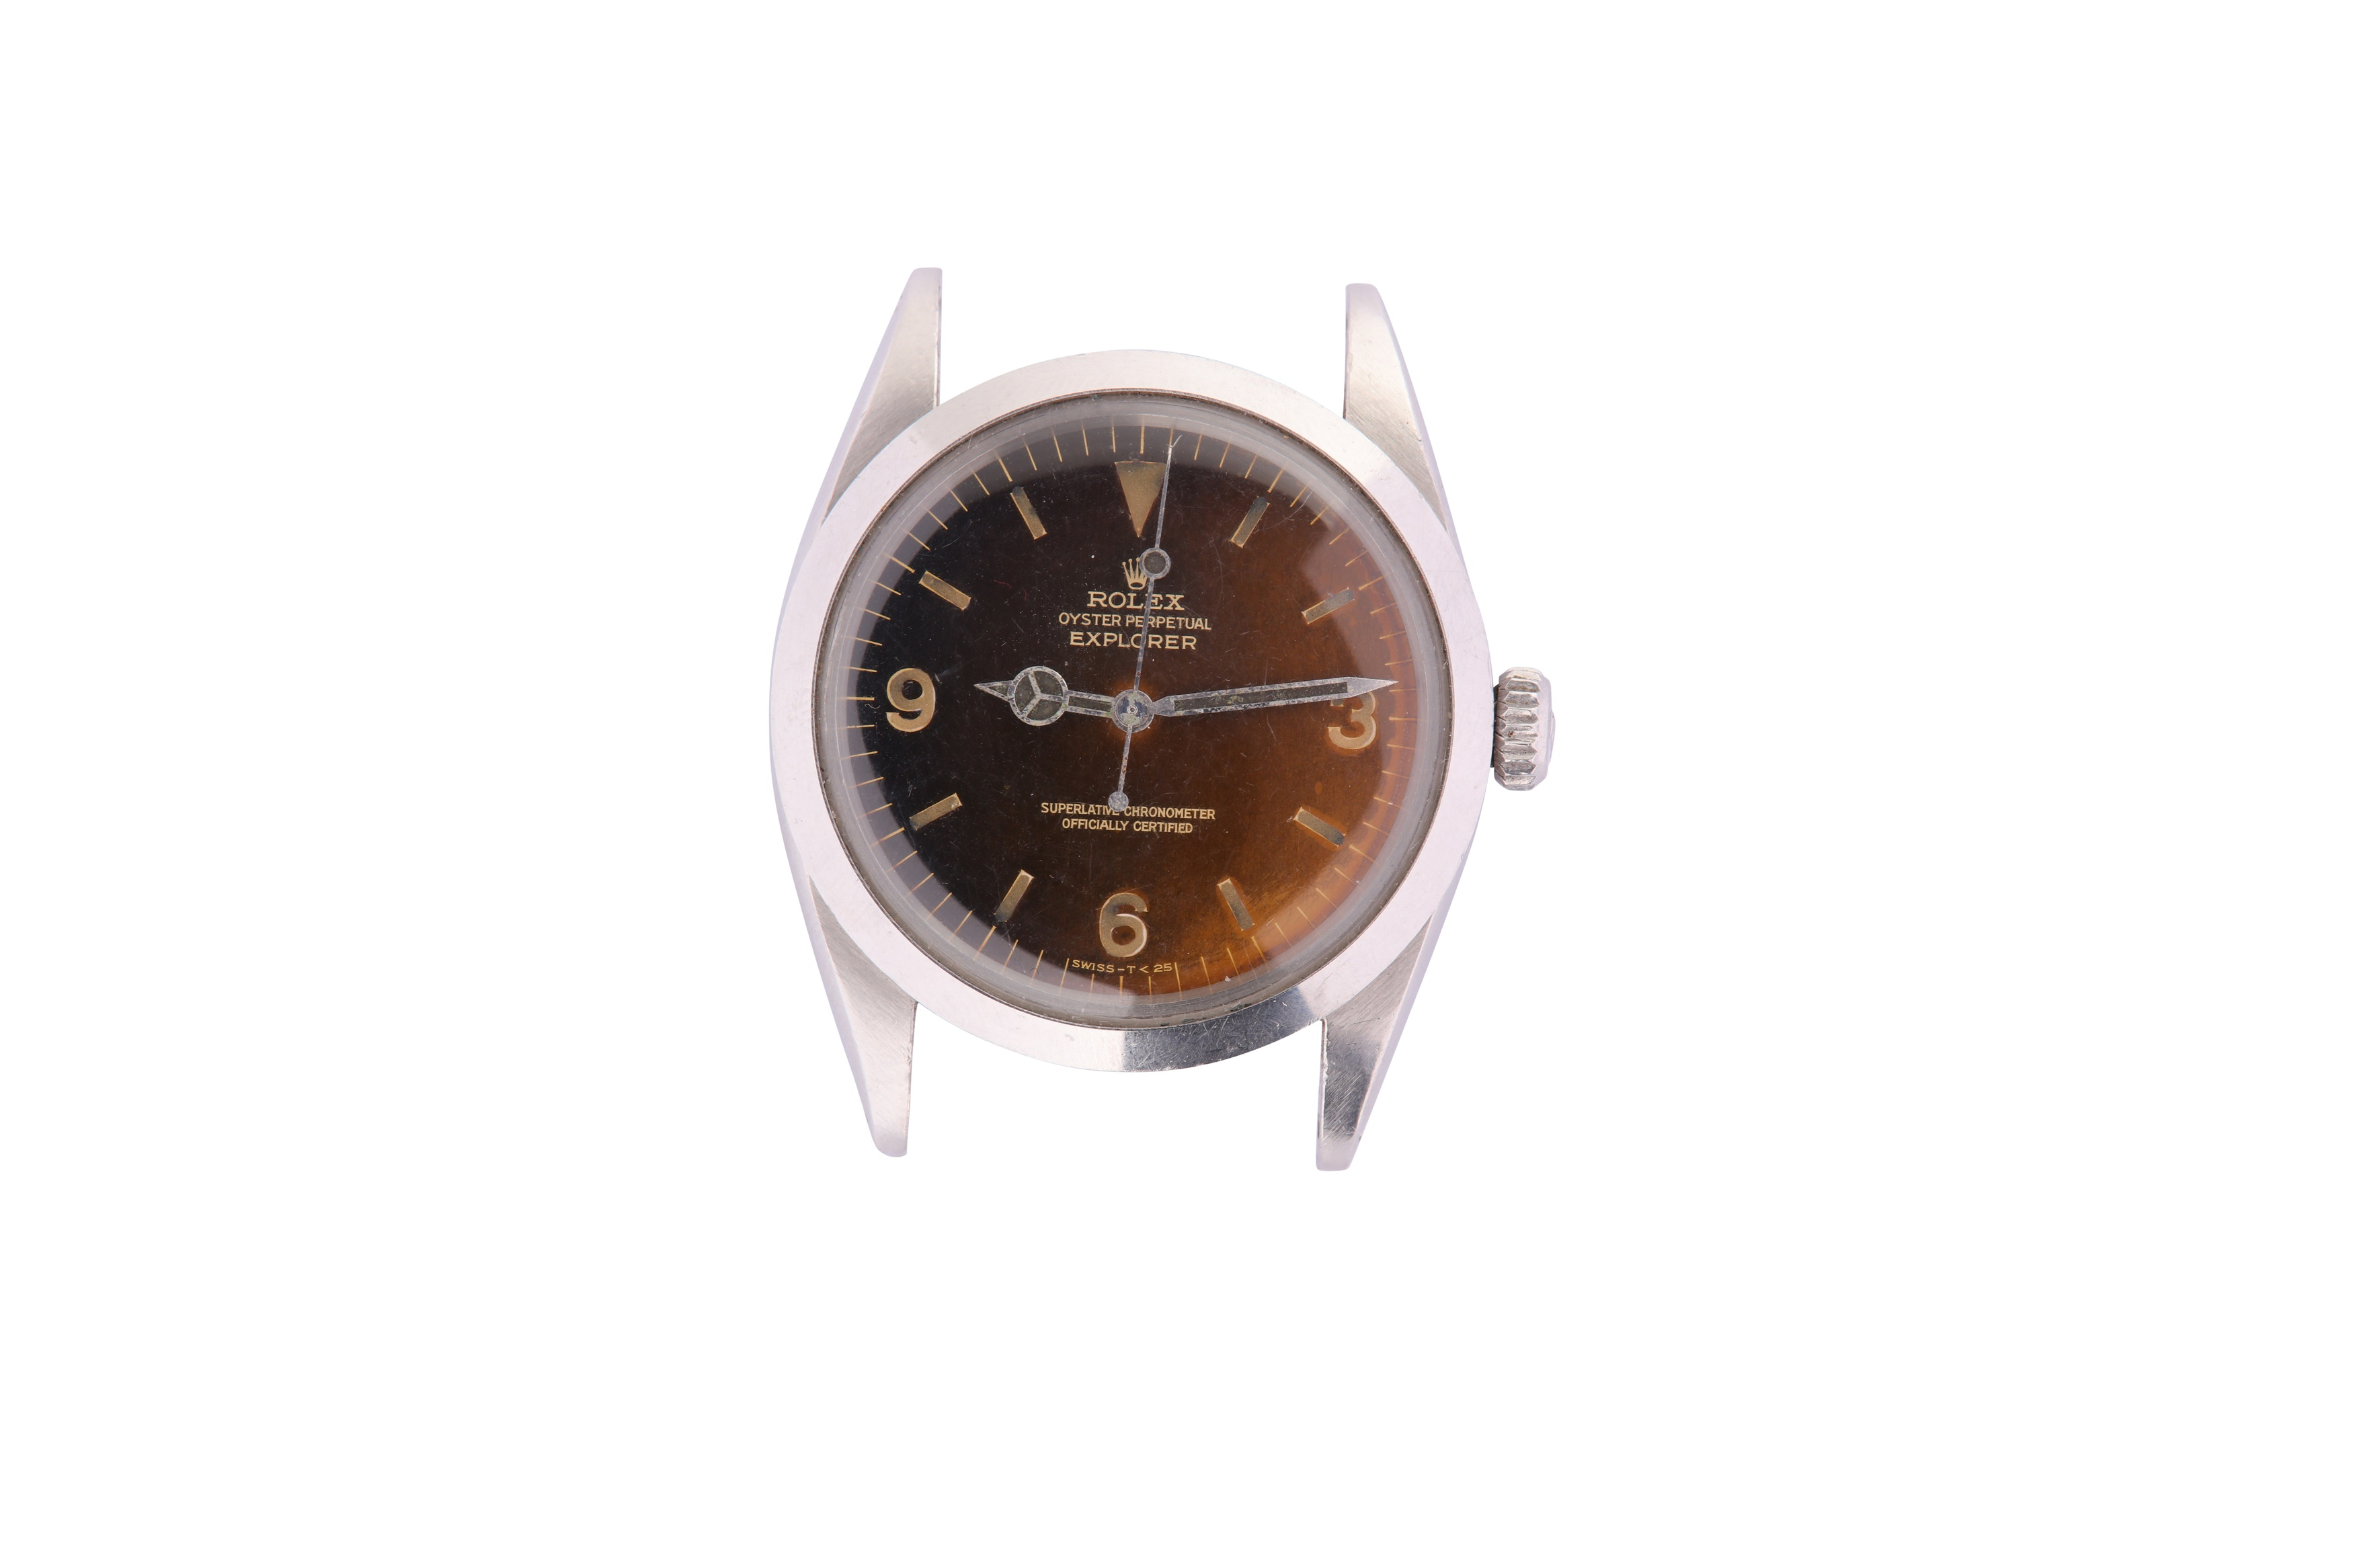 A RARE AND ATTRACTIVE MEN'S ROLEX STAINLESS STEEL AUTOMATIC WRISTWATCH - Image 7 of 9